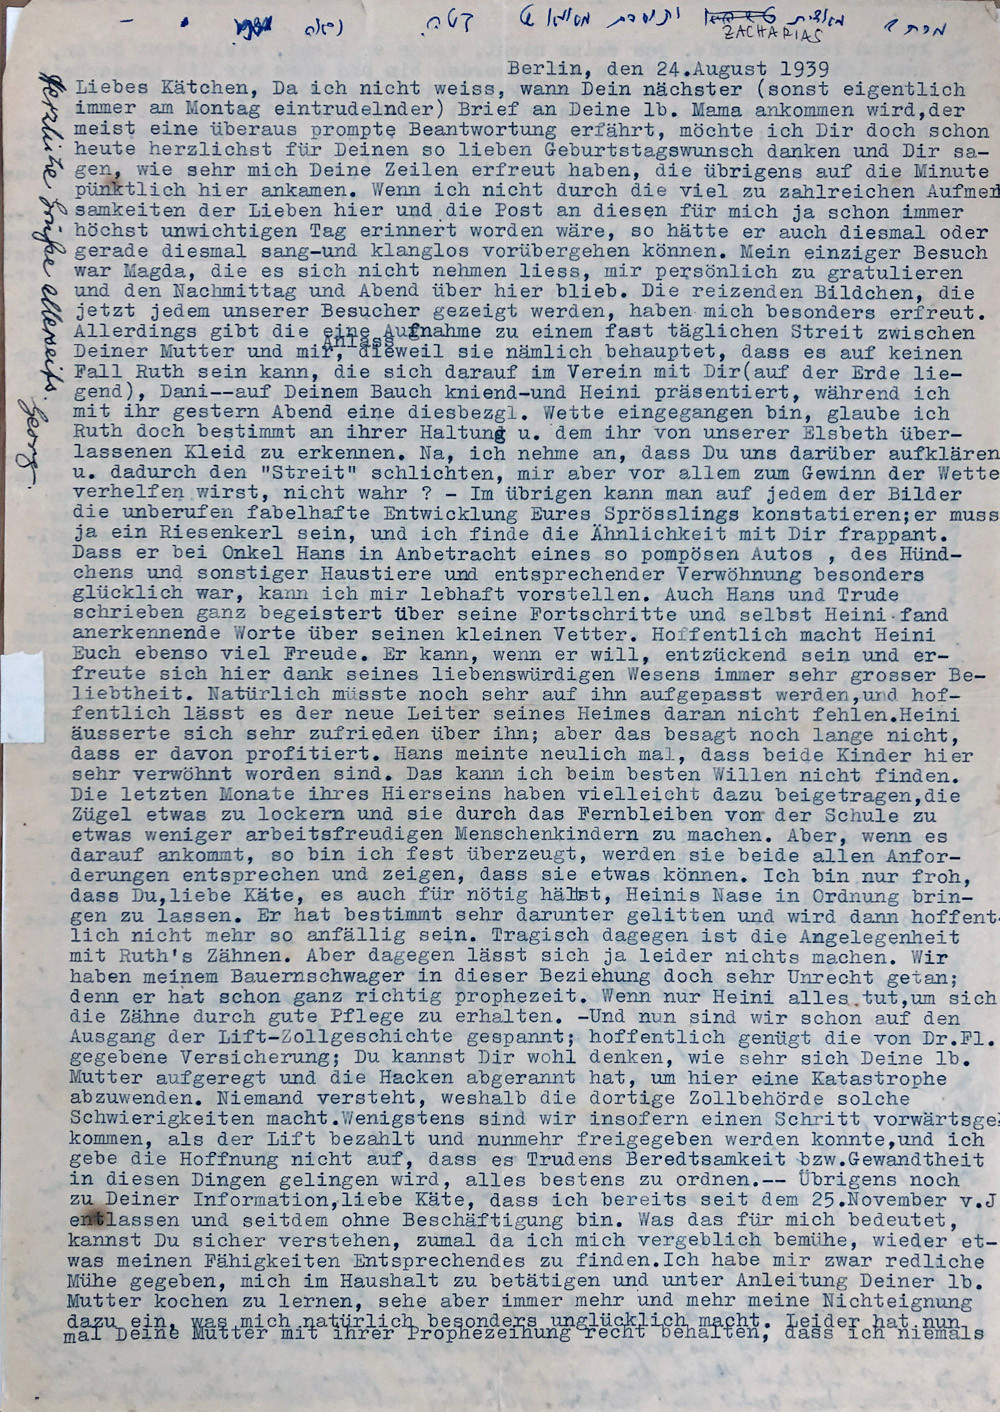 Letter from Berlin, Aug 1939